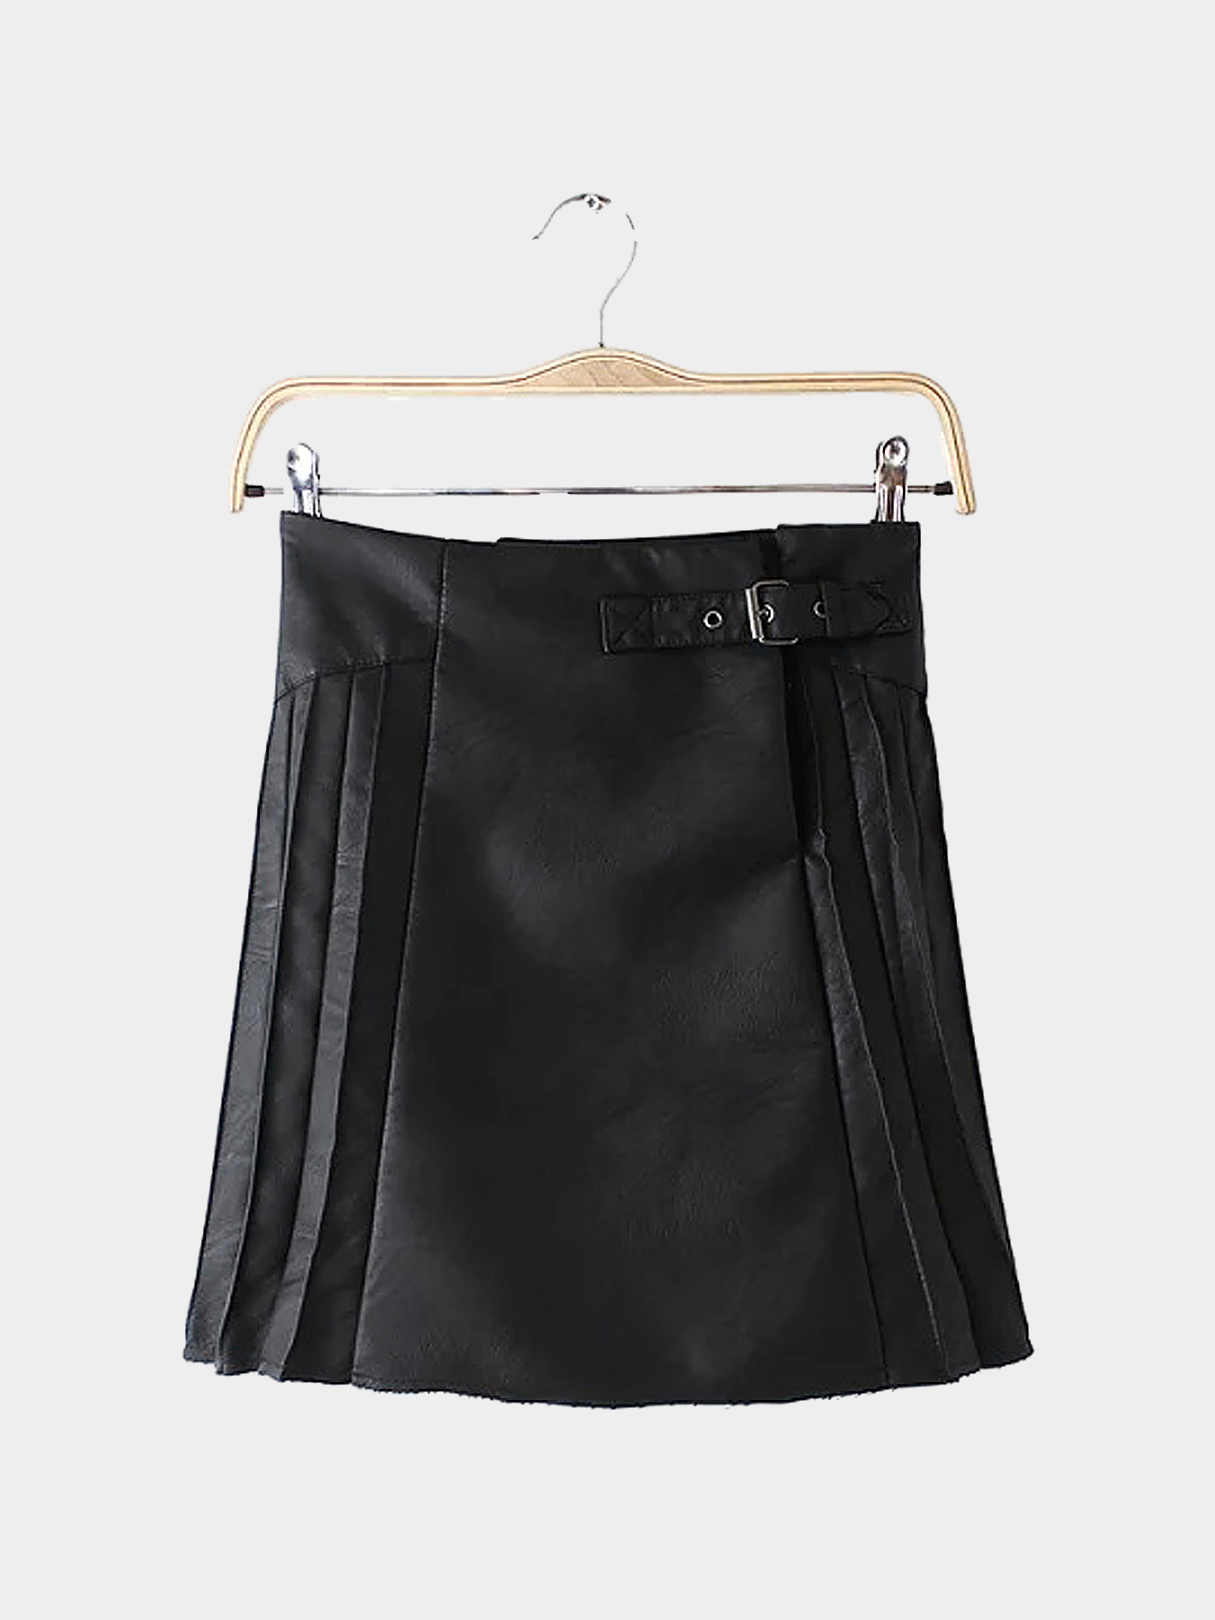 Black Leather Mini Skirt with Pleated Side fashion panda head and letters embroidery baseball cap for men